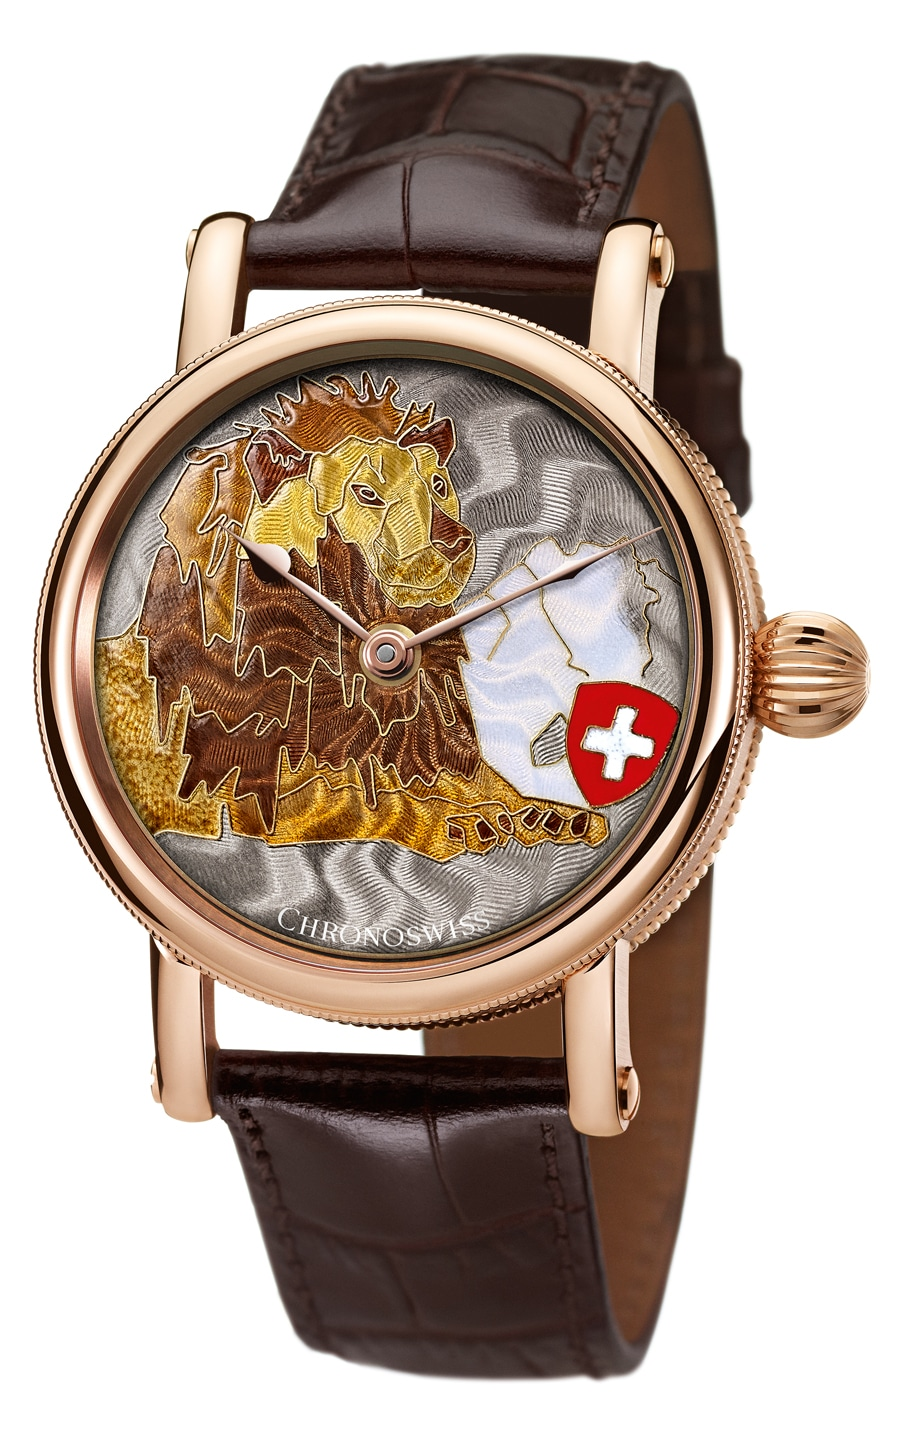 Chronoswiss: Sirius Lion Heart